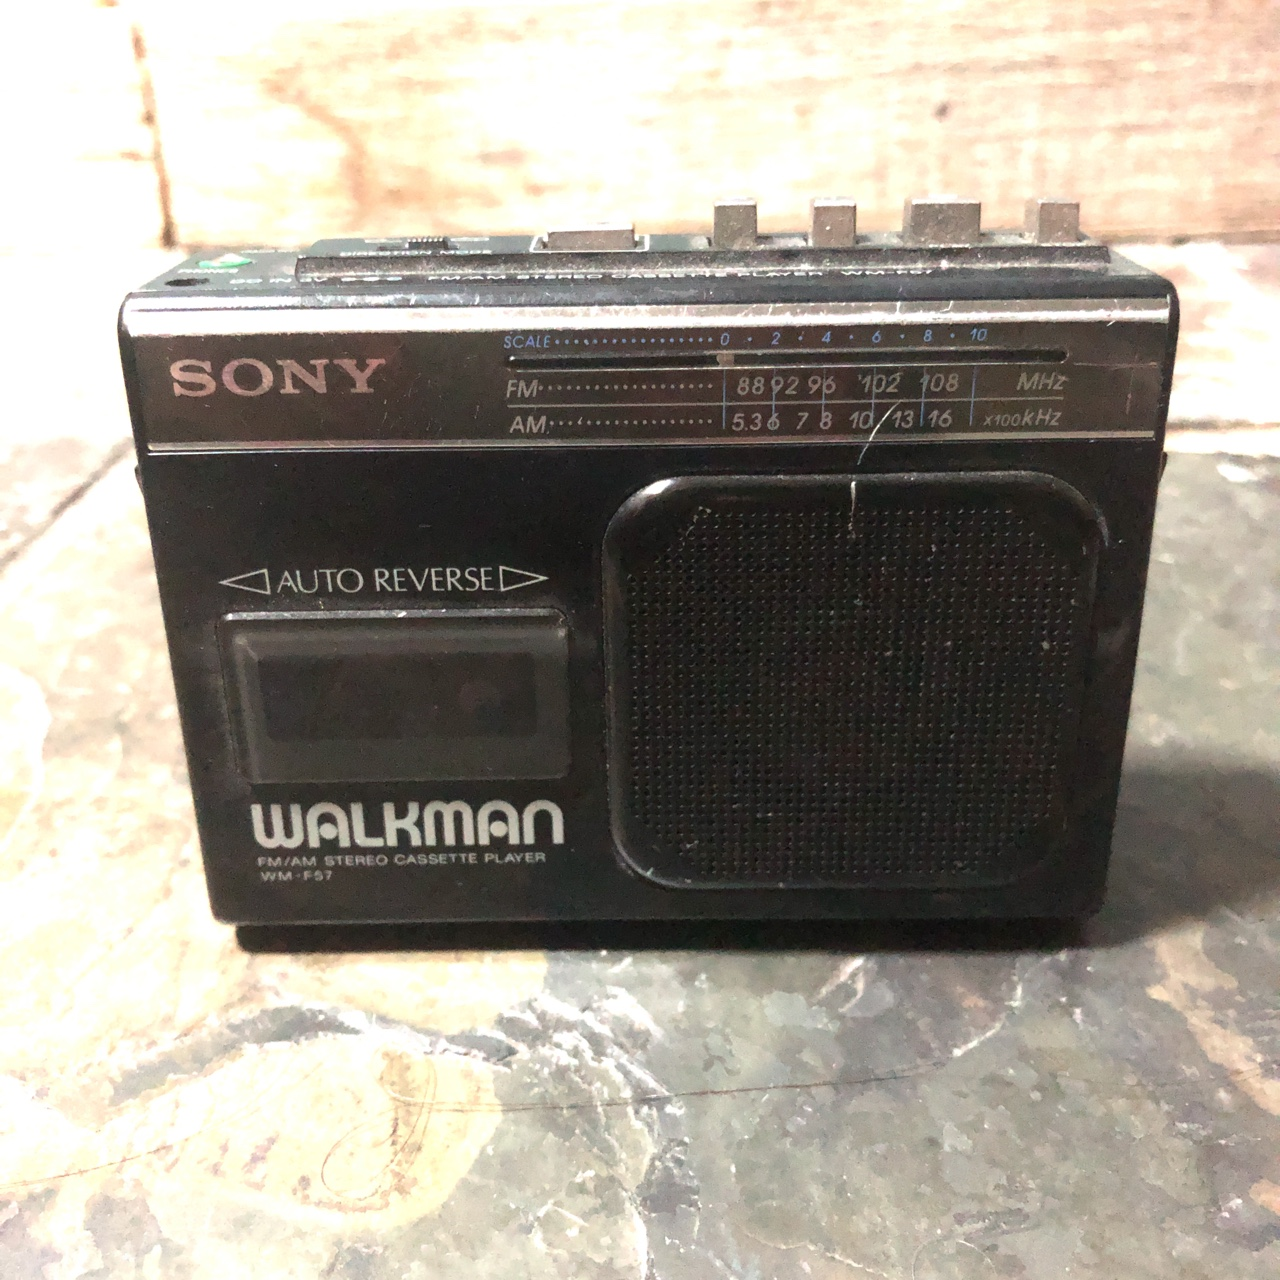 Sony WM F57 Walkman cassette player  Works fine and